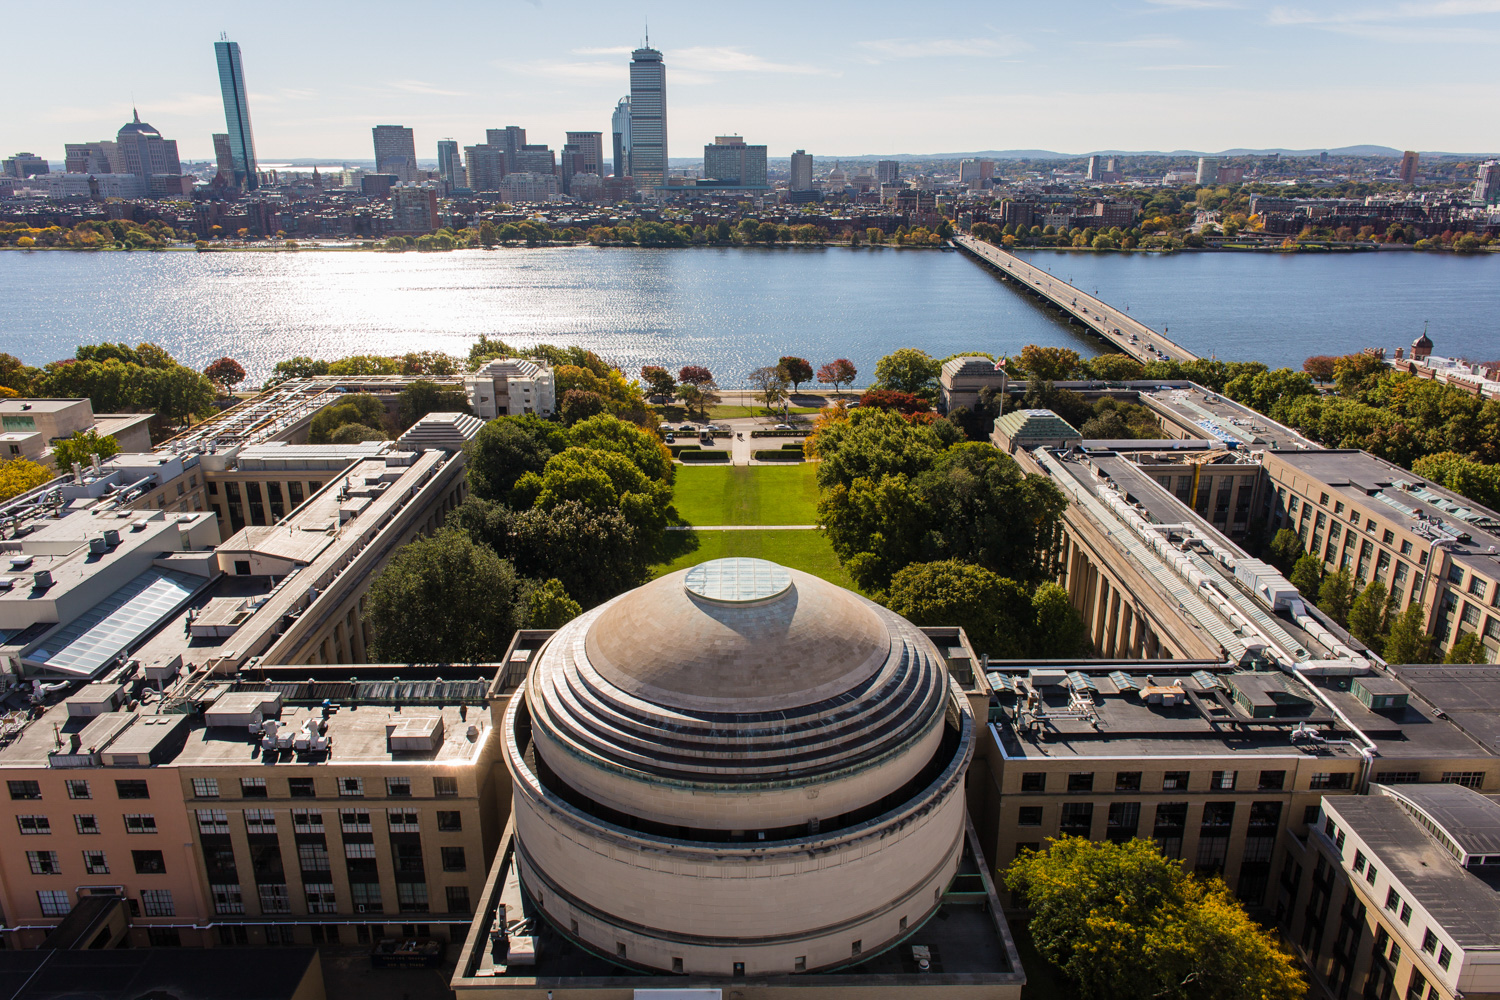 MIT Aerial Photograph Boston Drone